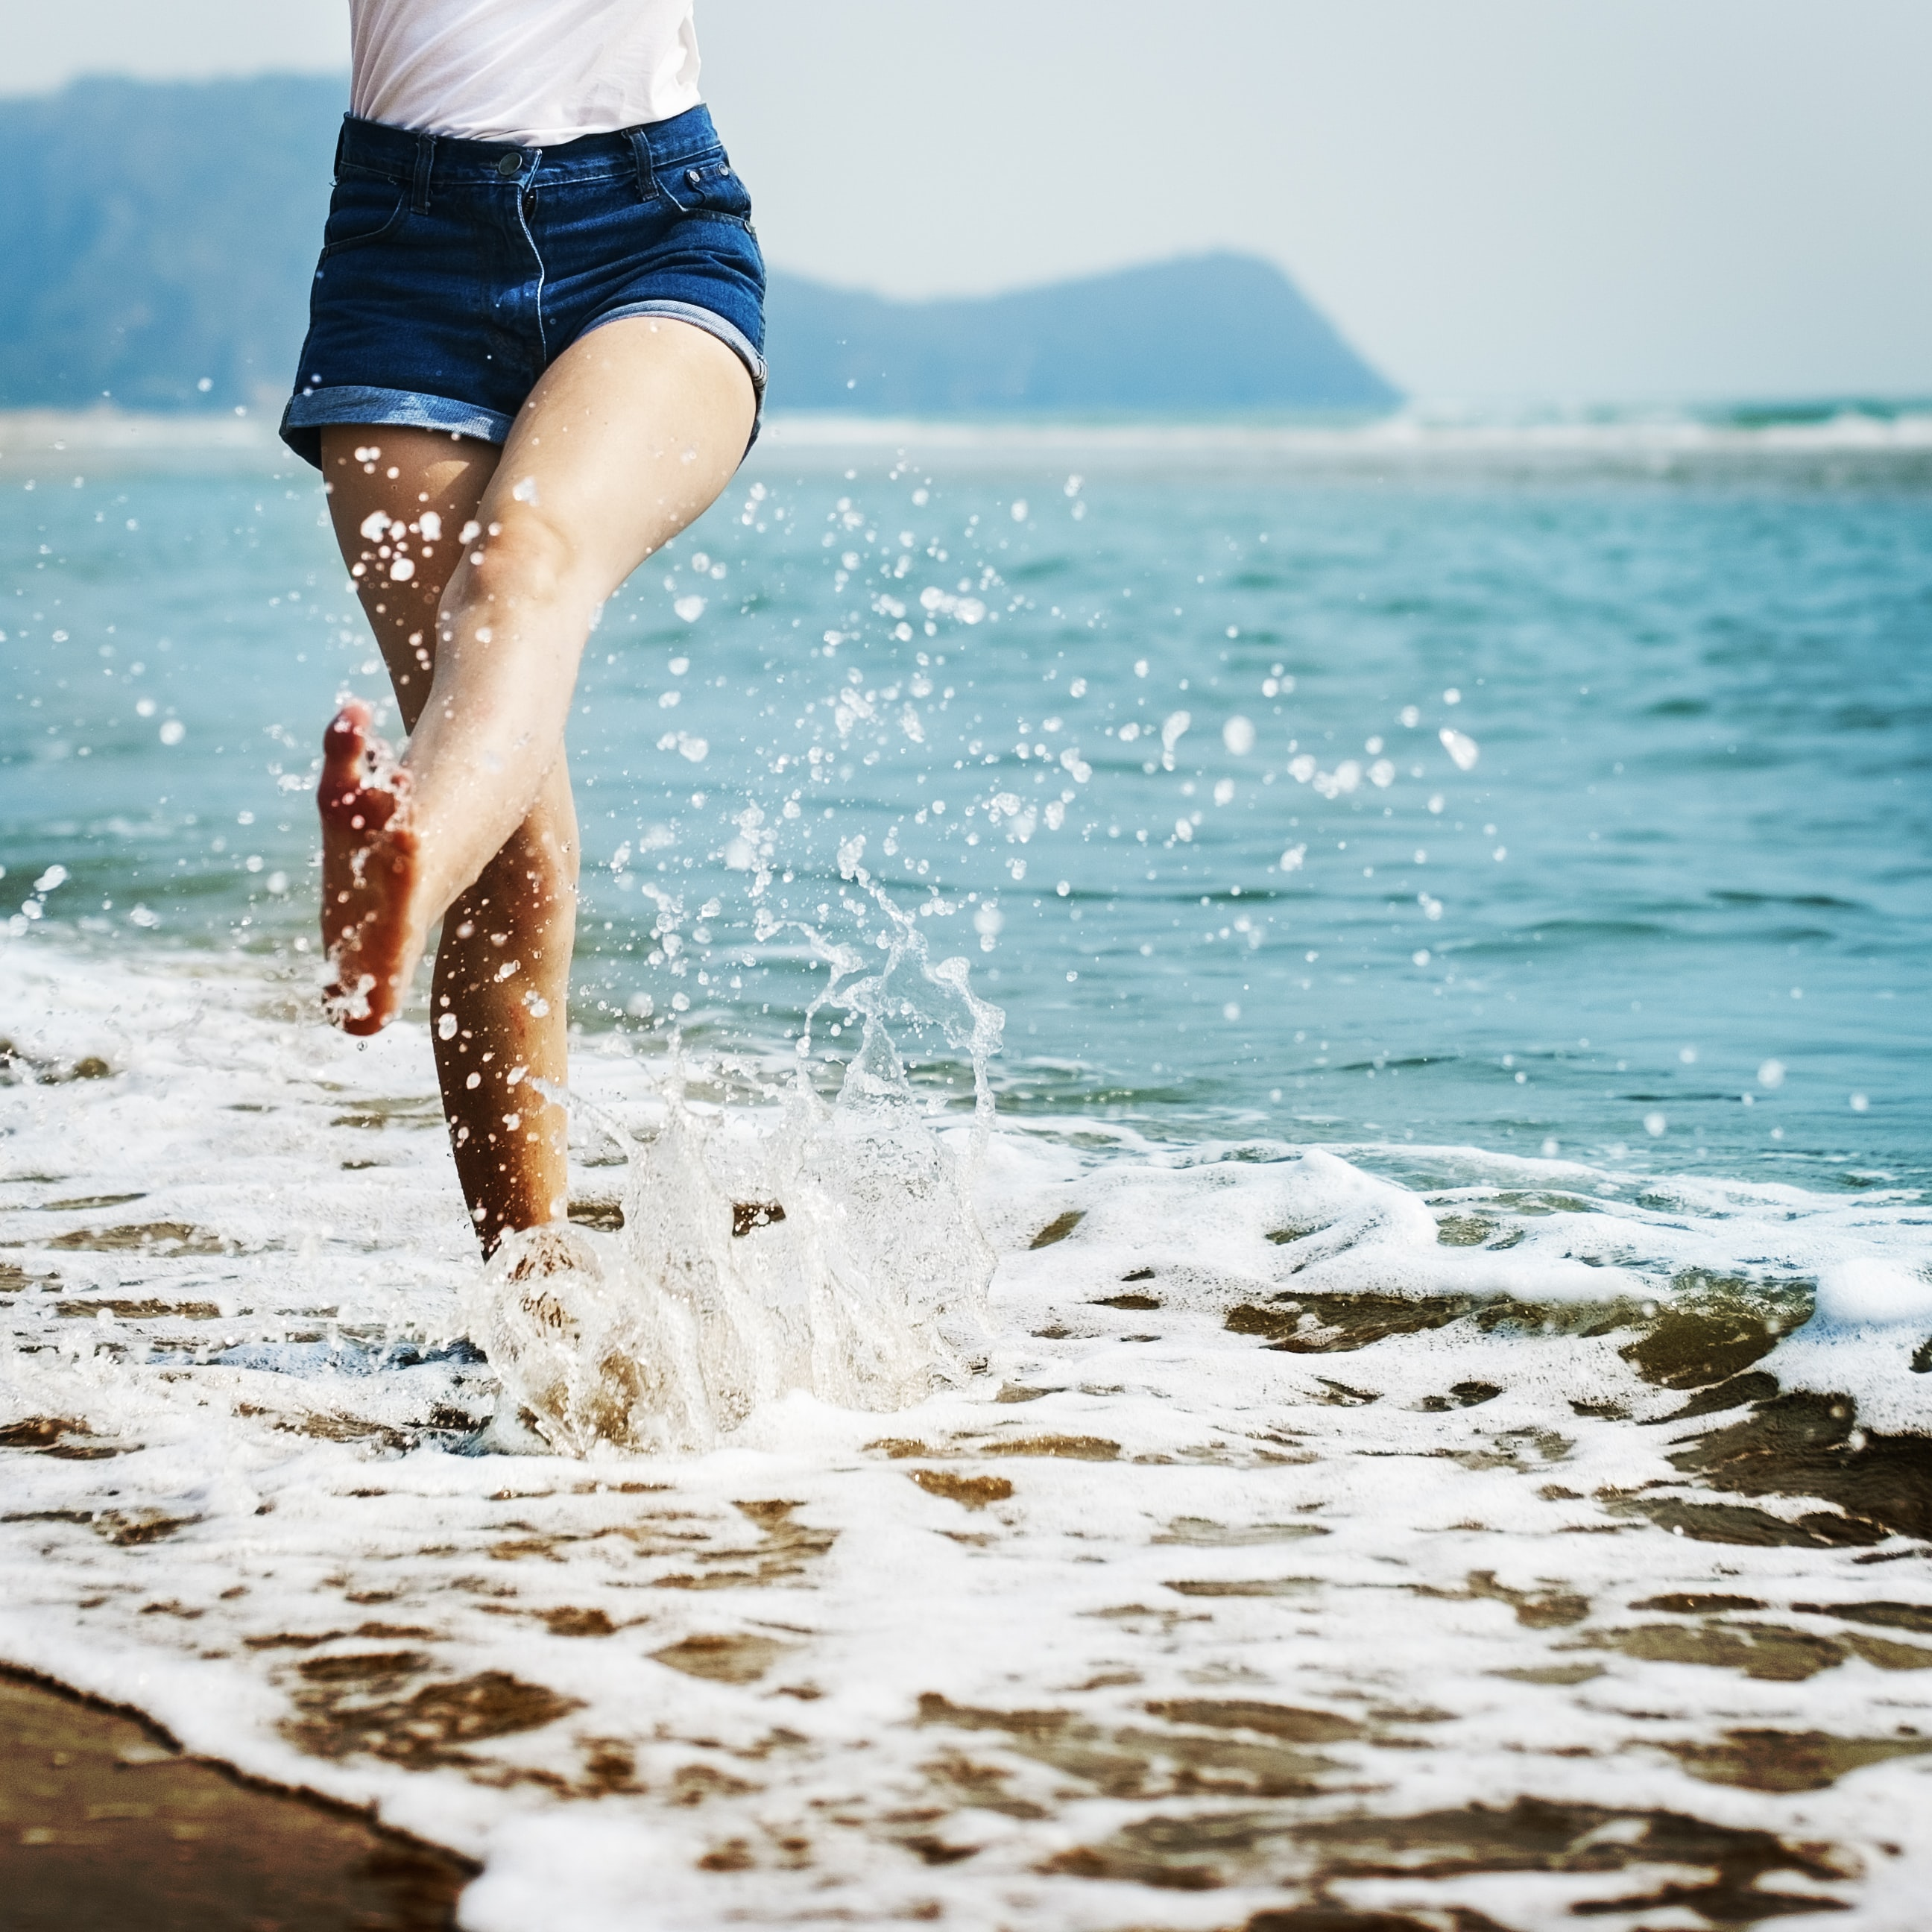 A girl wearing jean shorts splashing her feet in the ocean